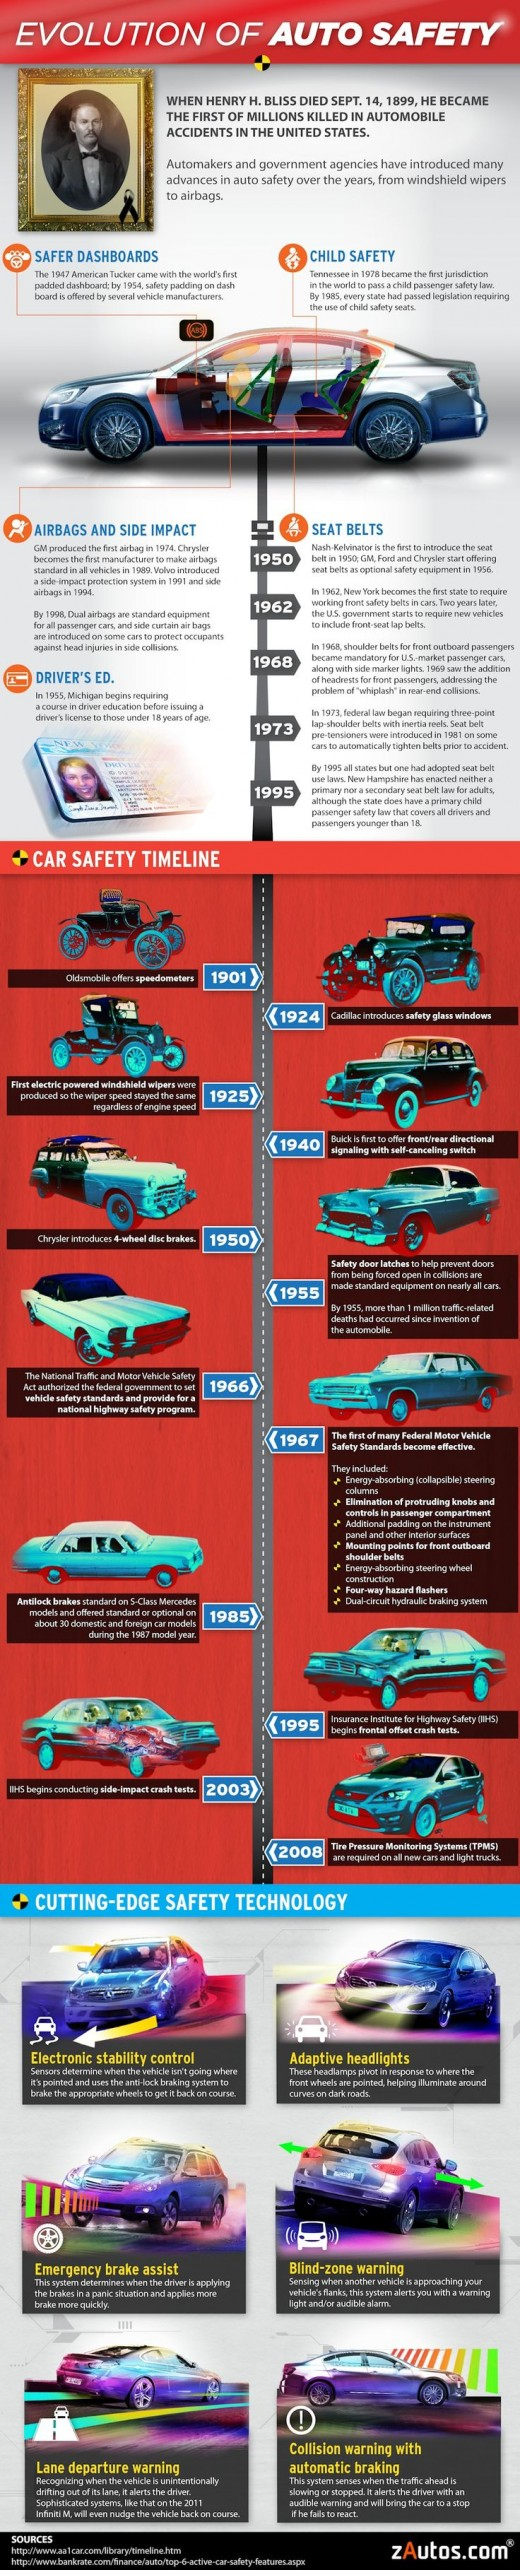 Evolution of automobile safety